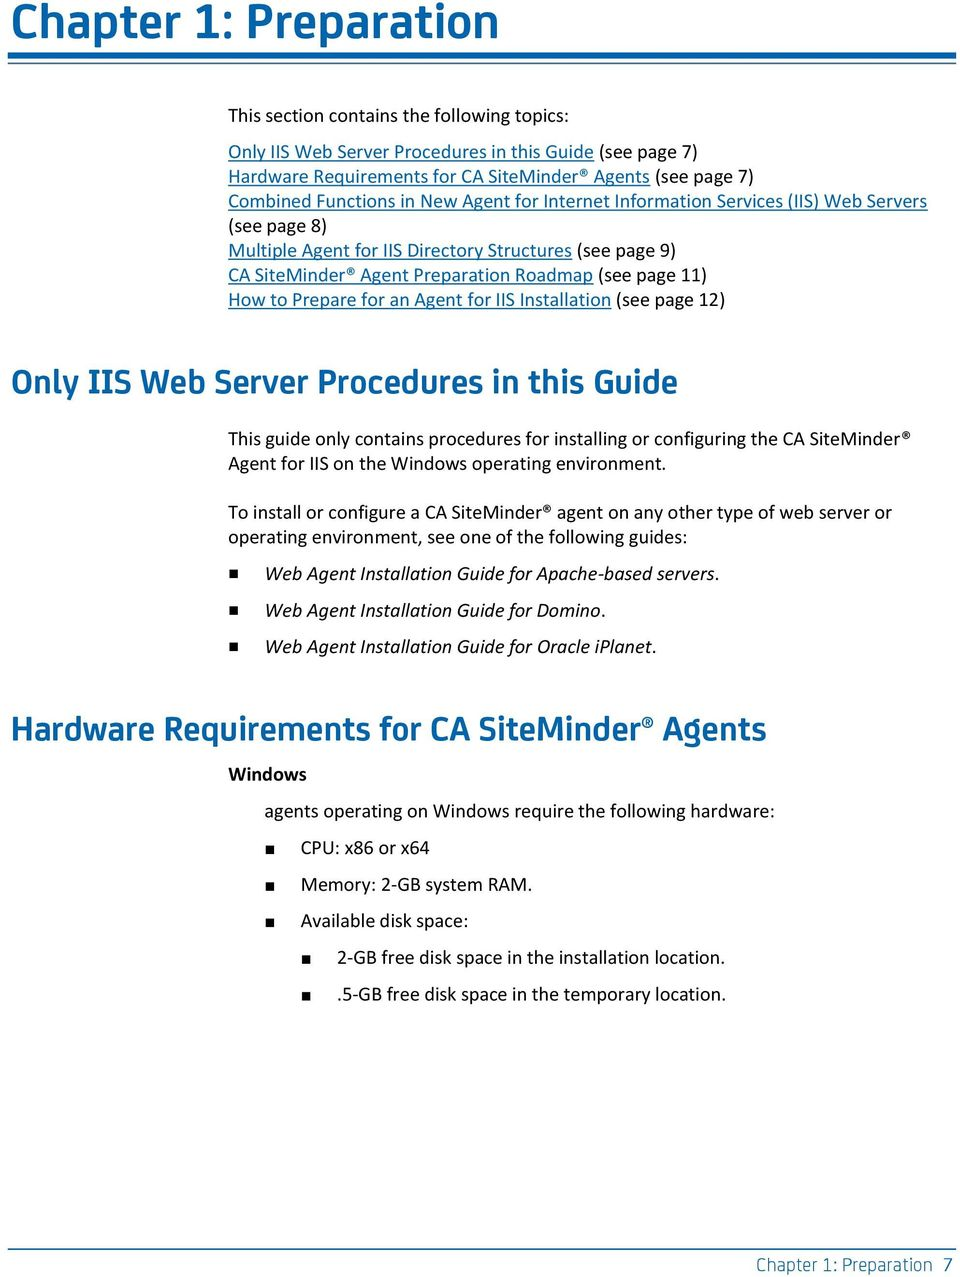 How to Prepare for an Agent for IIS Installation (see page 12) Only IIS Web Server Procedures in this Guide This guide only contains procedures for installing or configuring the CA SiteMinder Agent